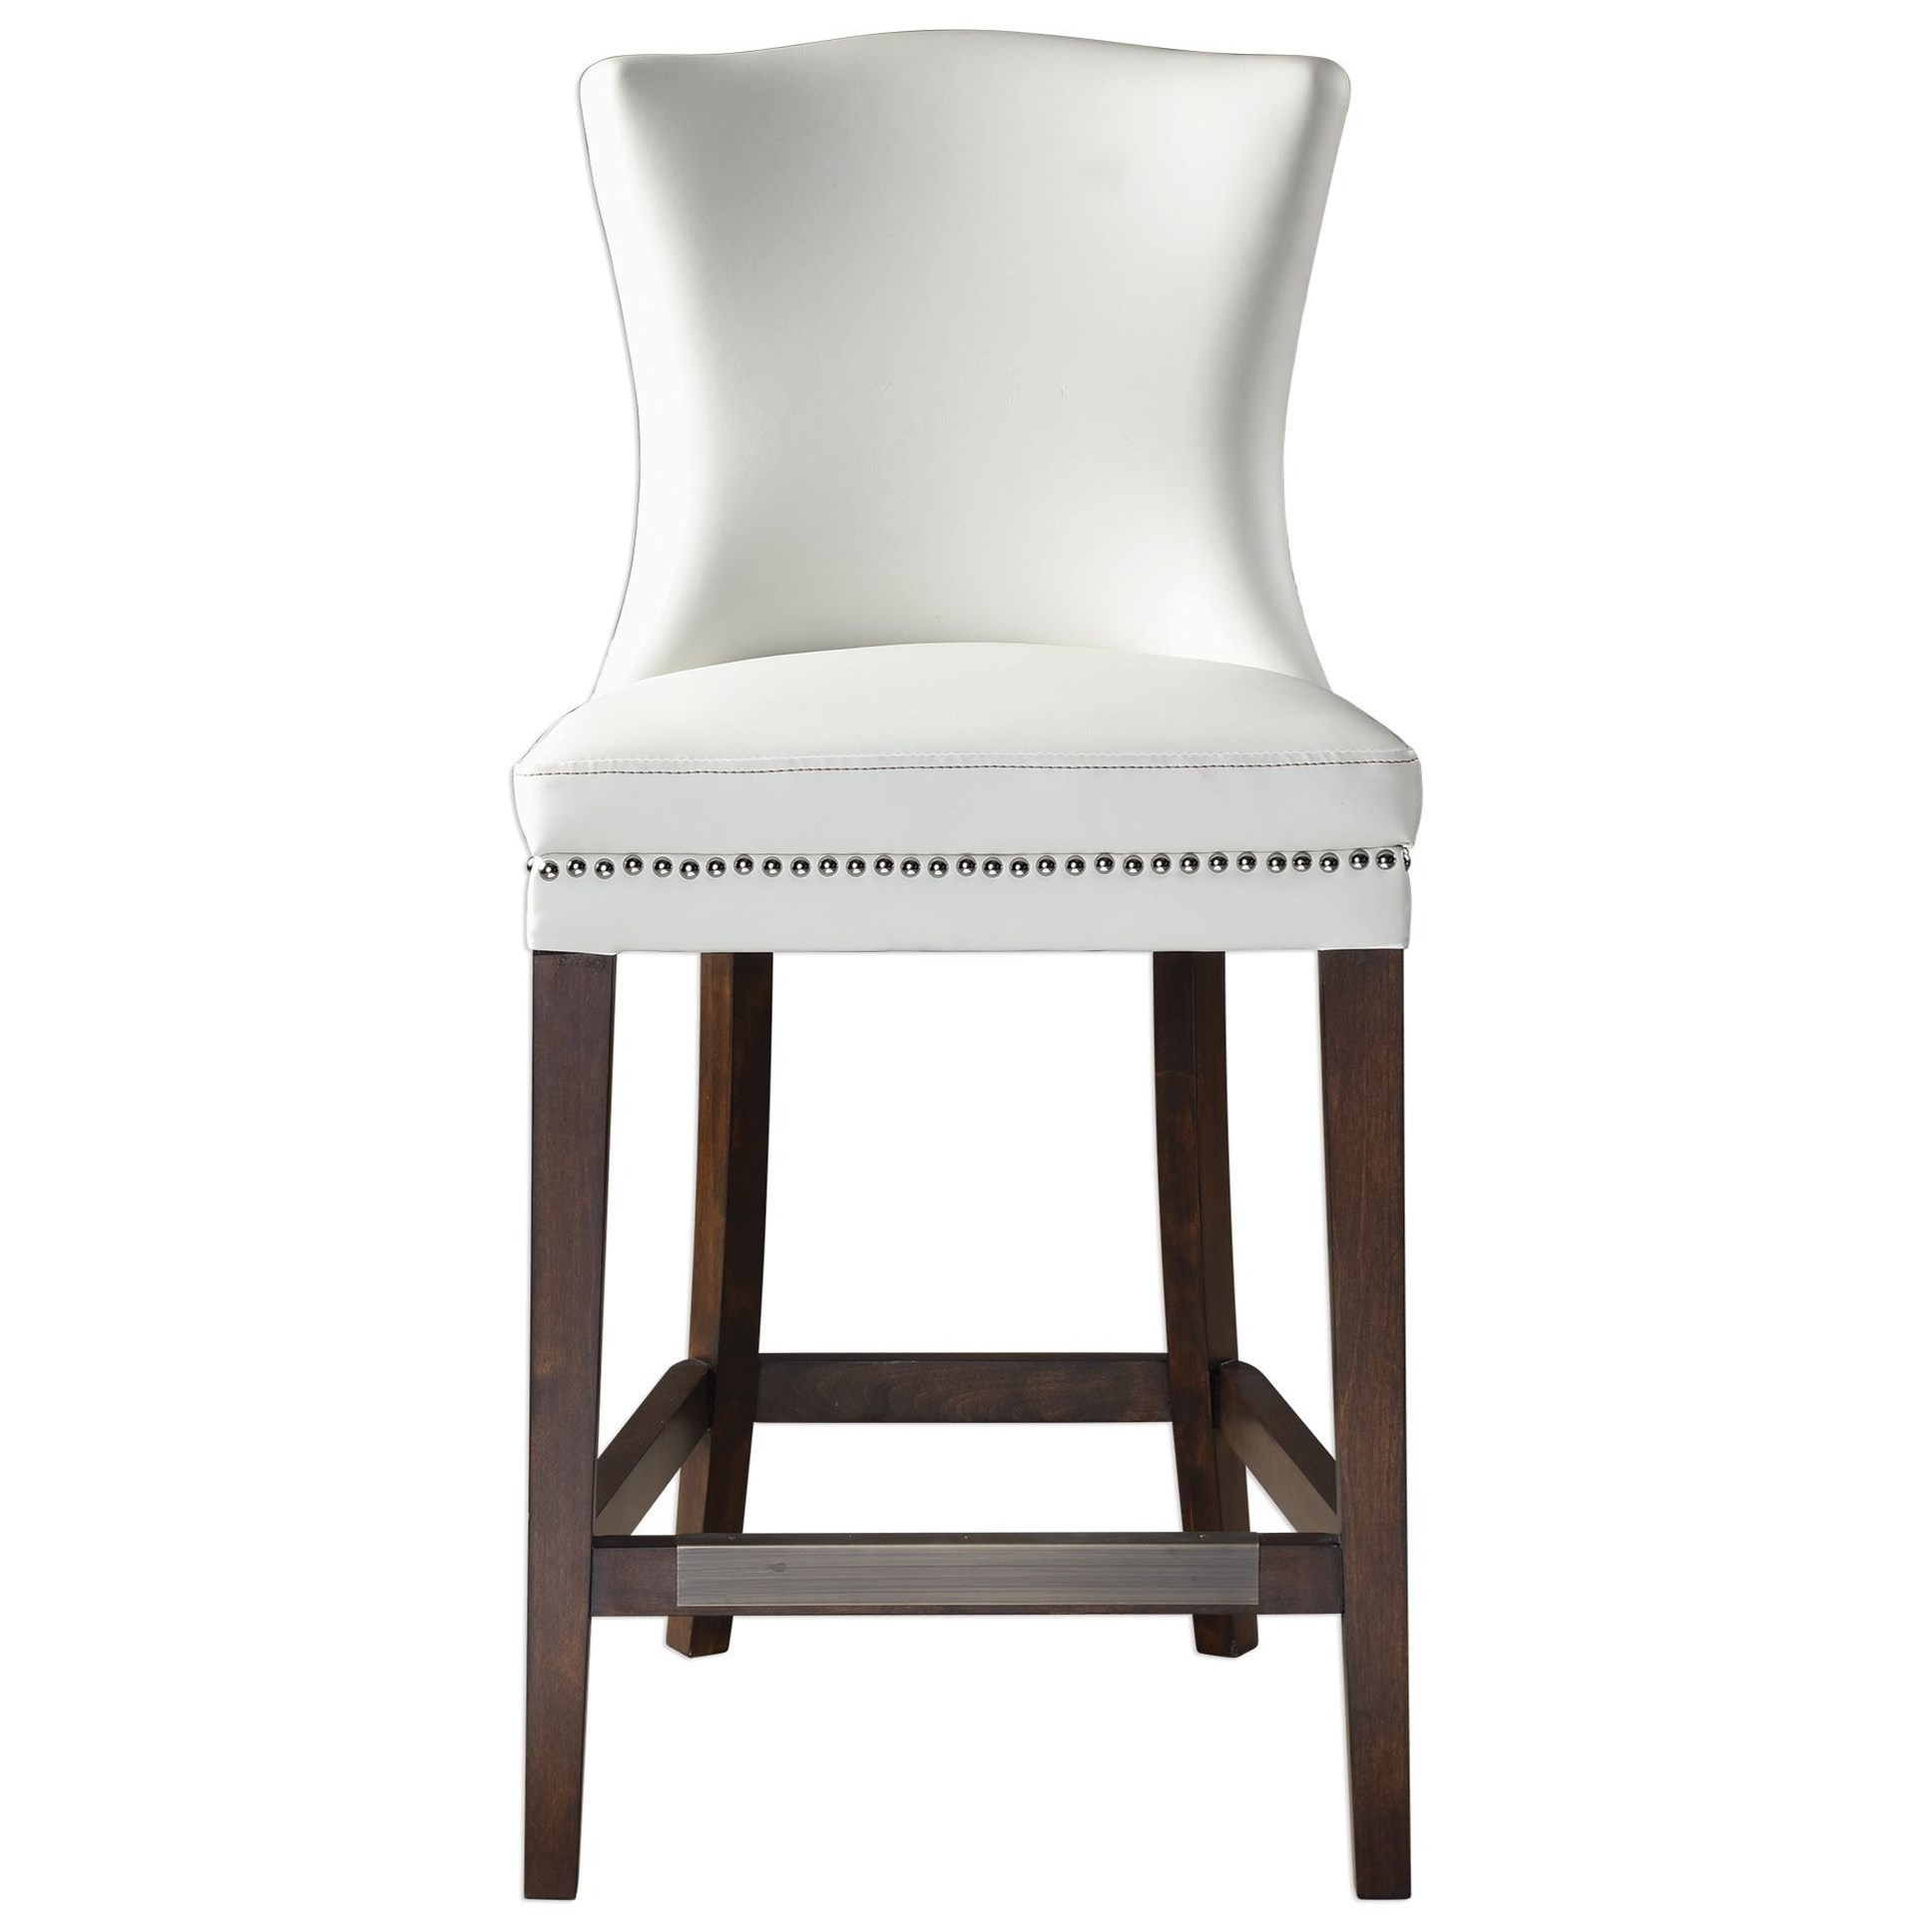 Accent Furniture - Stools Dariela White Counter Stool by Uttermost at Upper Room Home Furnishings